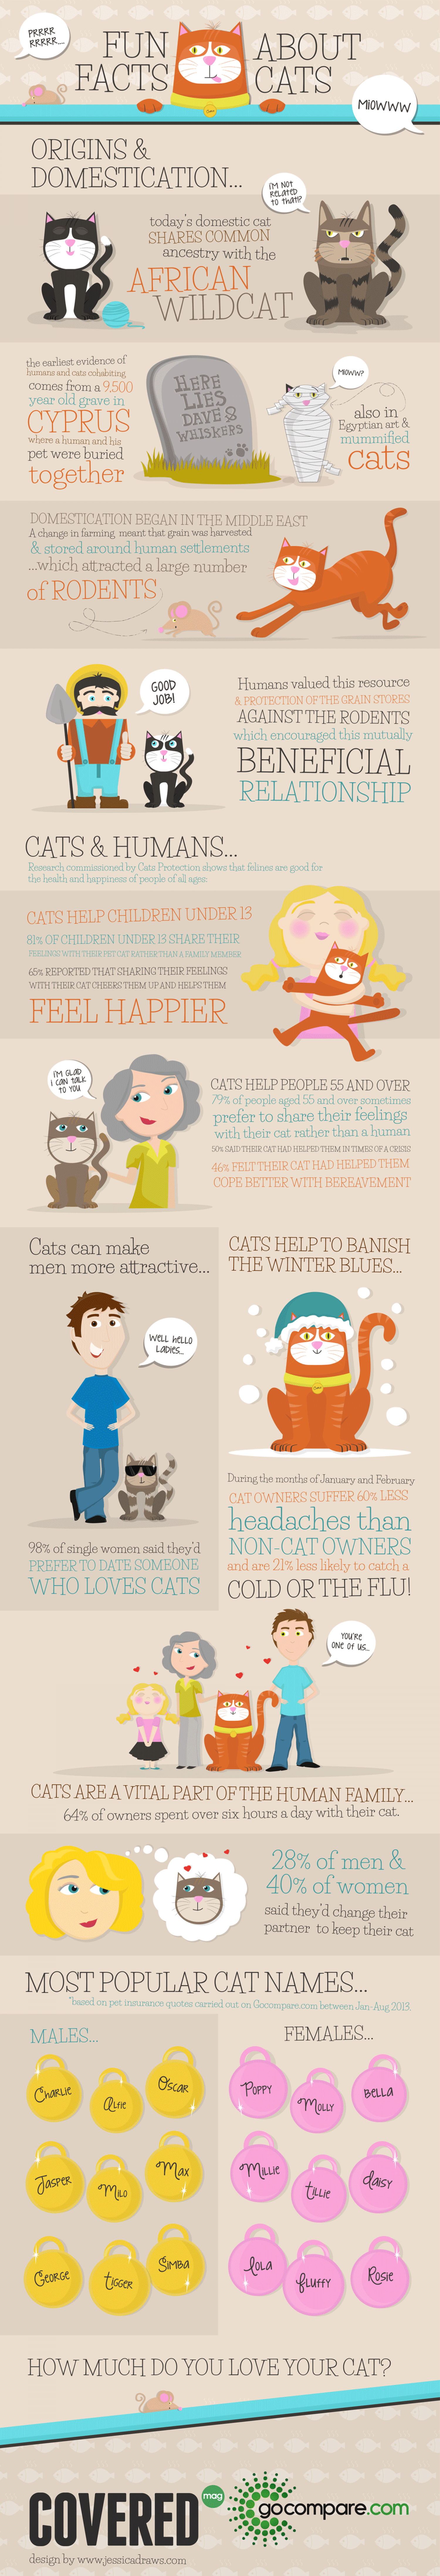 Fun Facts About Cats Infographic